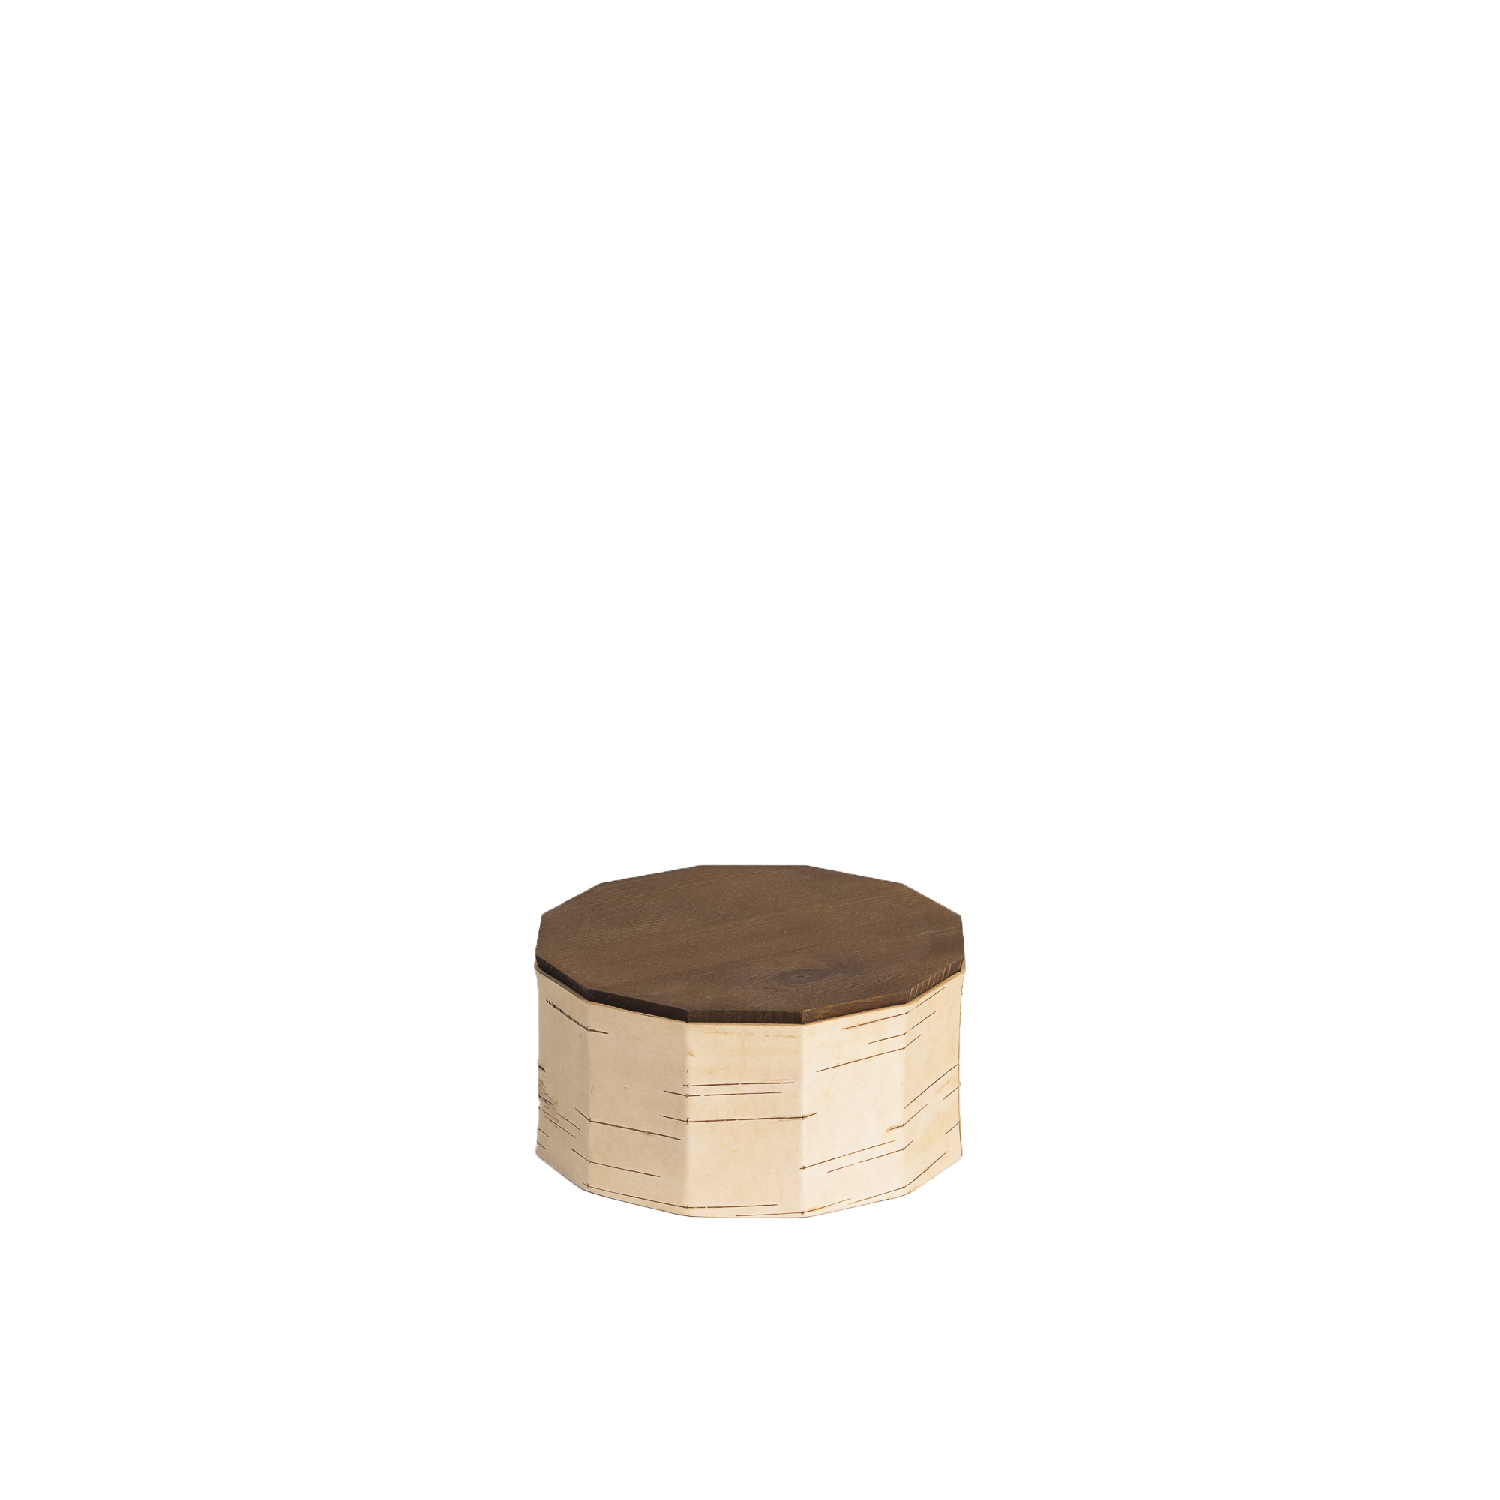 Tuesa Cookie Box - Antibacterial, insulating, water-resistant and particularly light birch bark containers keep foodstuffs fresh for longer and are incredibly durable while being low maintenance at the same time. Our Cookie box is best suited for storing biscuits, self-baked sweets, dried fruit or any delicacies, that should stay crispy and tasty. They are also perfect for serving and presenting.  Tuesa guarantees a non-slip warm surface and a secure grip even when wet – you can even rinse them with water if needed. Birch bark is characterised above all by its robustness and extreme longevity, whilst not requiring any maintenance. Products made from it bring joy for a long time and can be passed down through generations as heirlooms.  Height 10 cm | ø 19 cm Birch bark, pine wood Surface: water-based wood stain, bees wax | Matter of Stuff